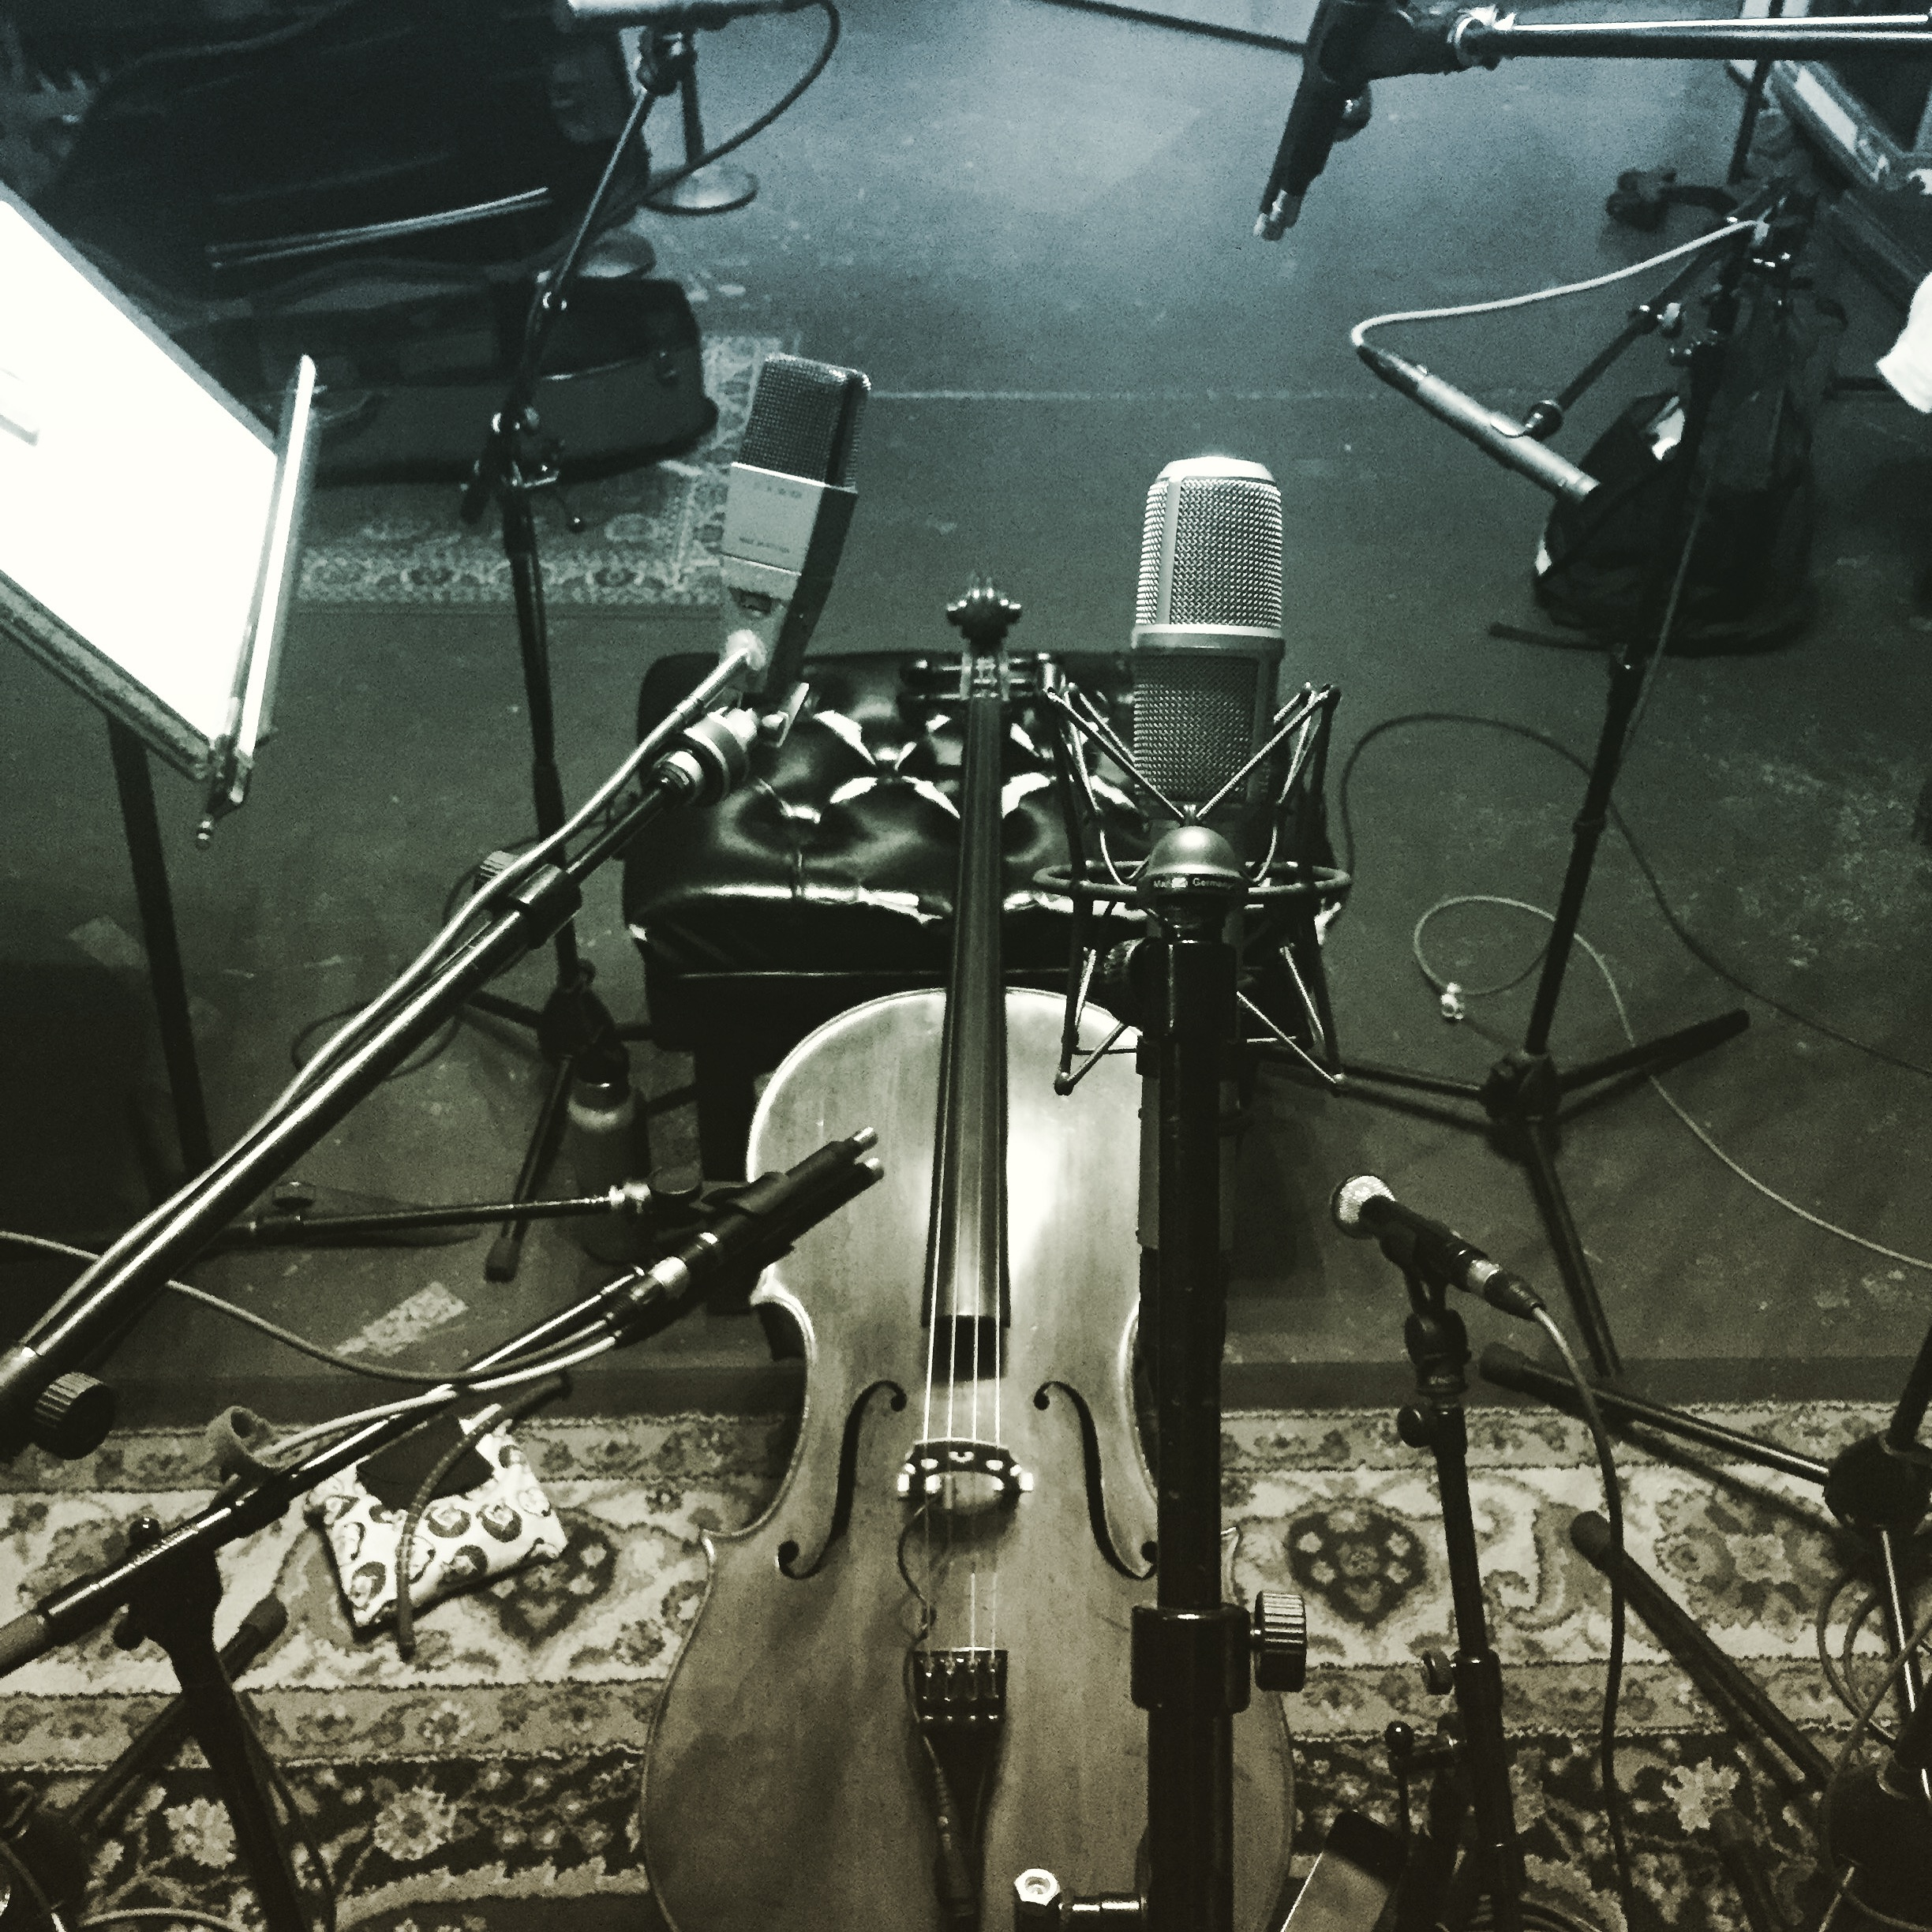 Testing out mics for a solo cello and voice album @ Tiny Telephone Studios, SF w/ Adam Hirsch. More sessions in the works for Fall 2018 - stay (de)tuned...